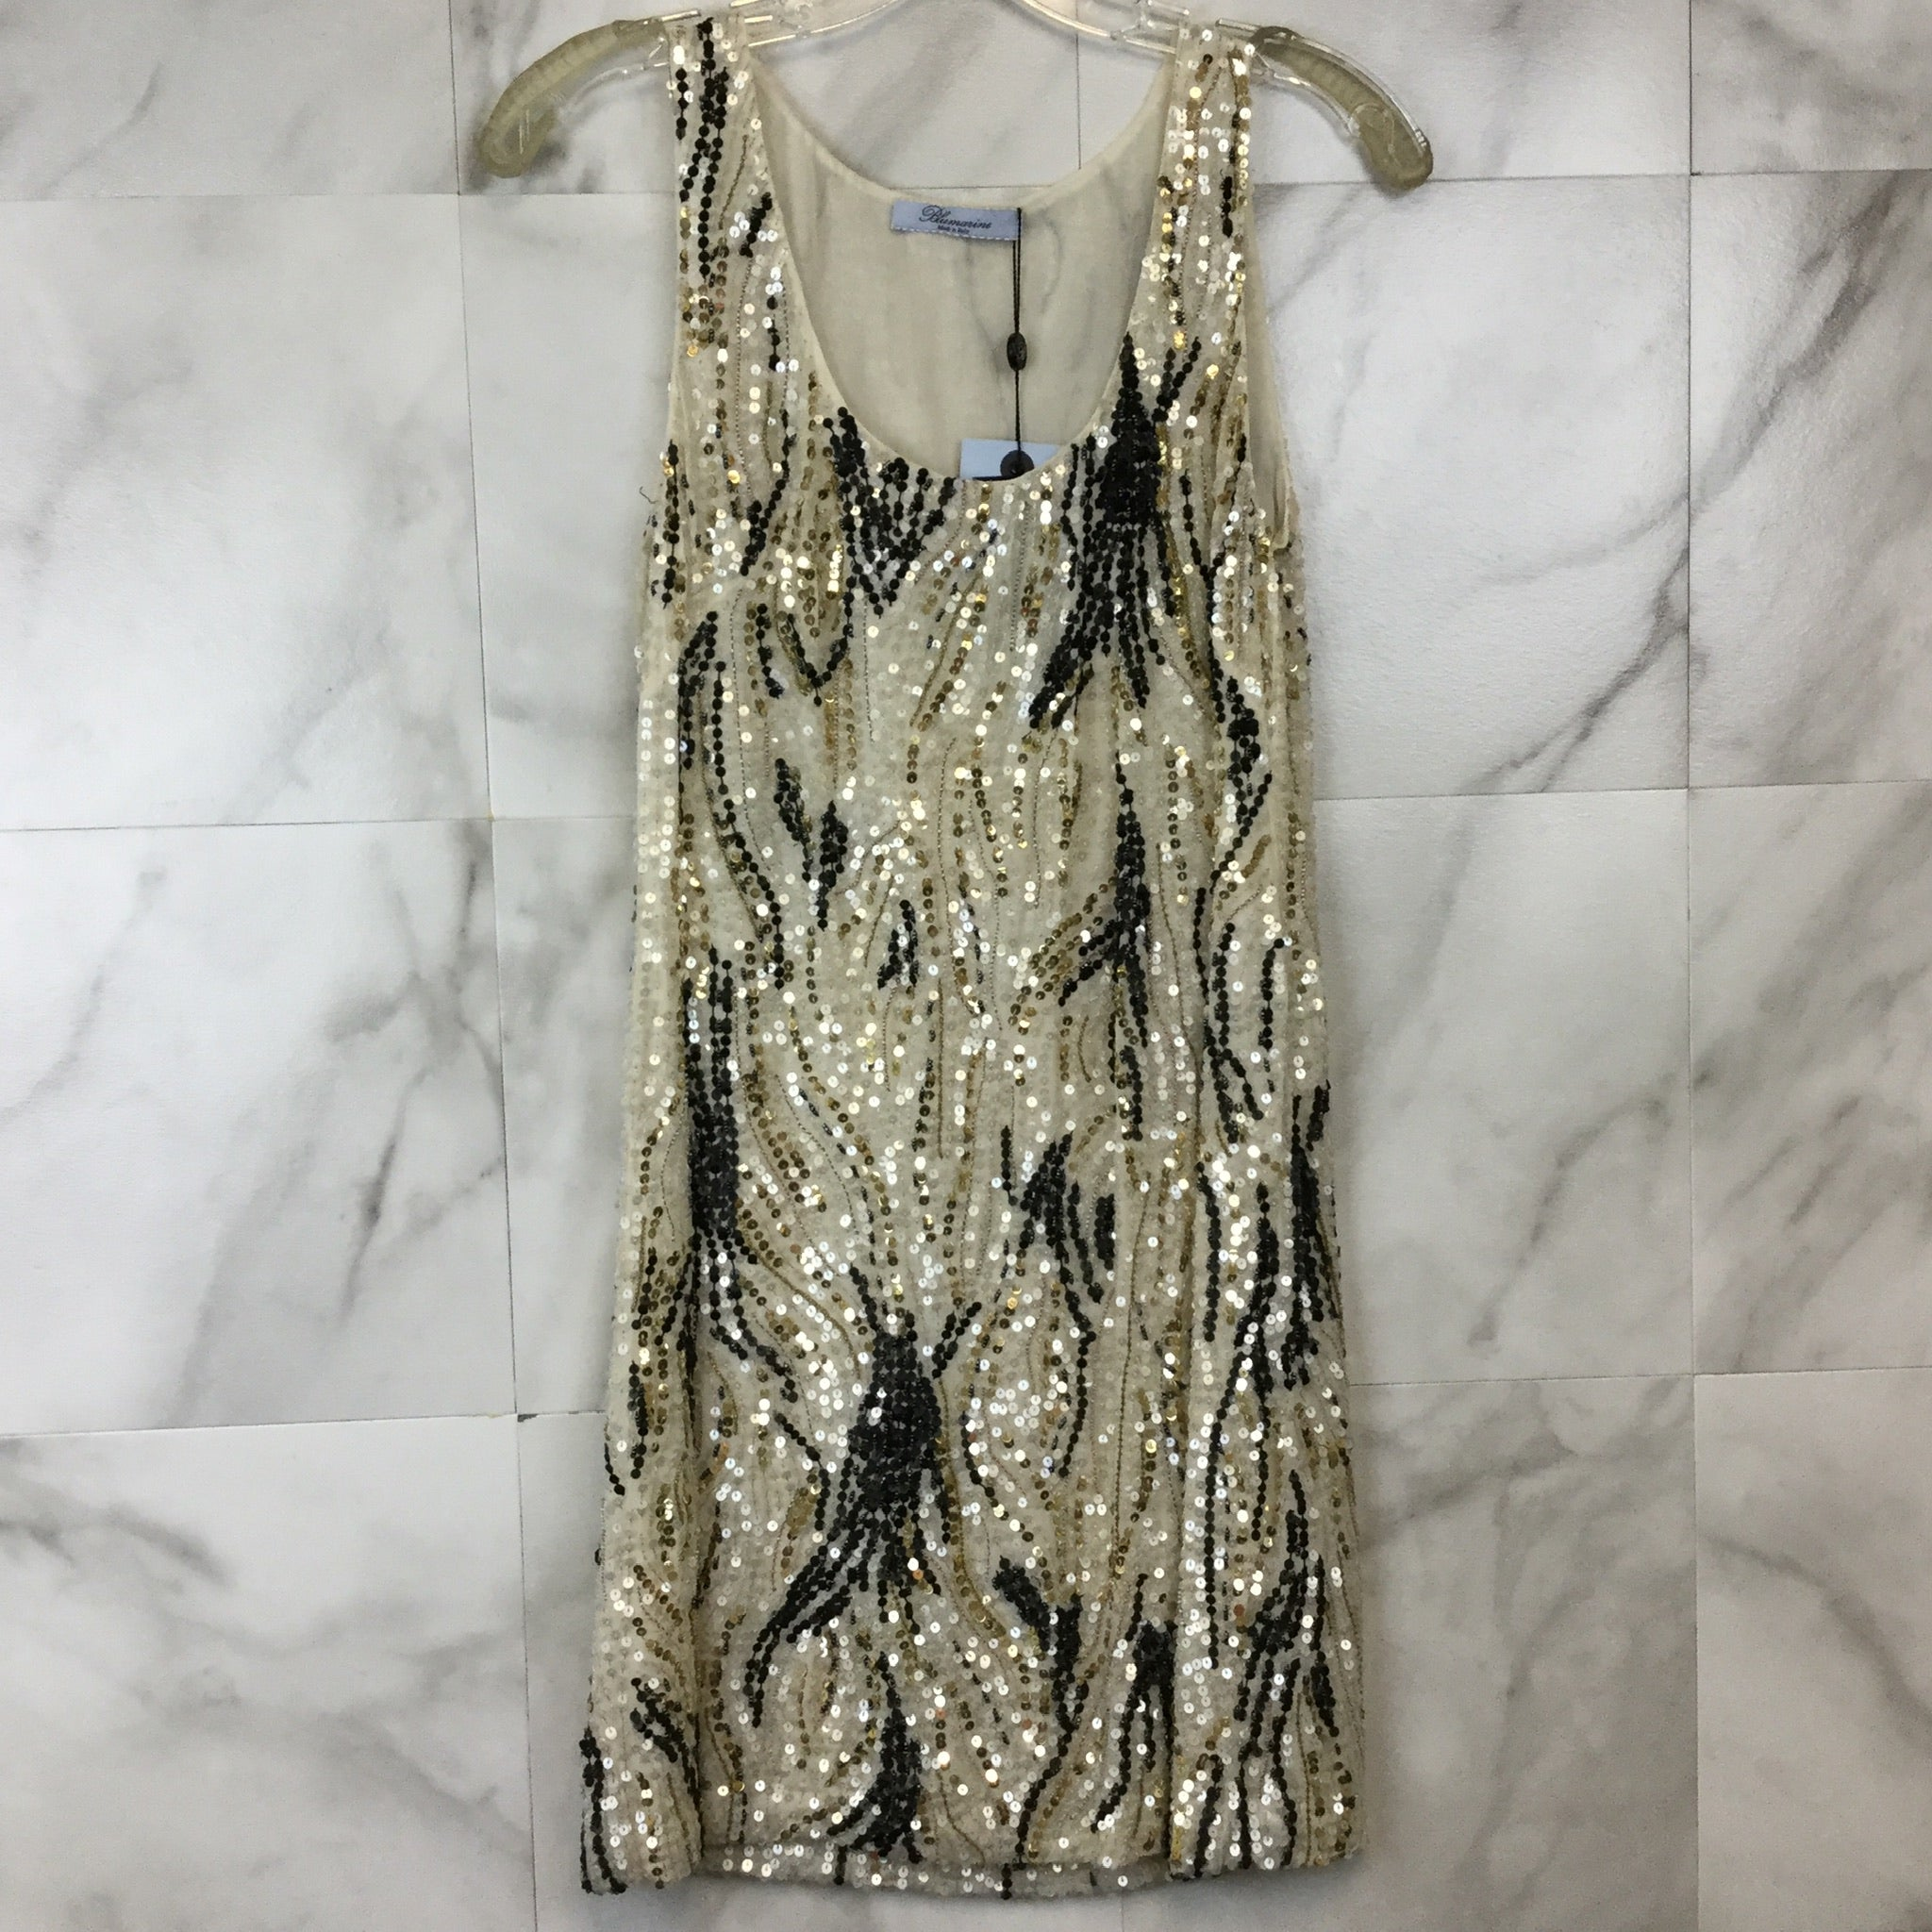 Blumarine Sequin Mini Dress - size 42